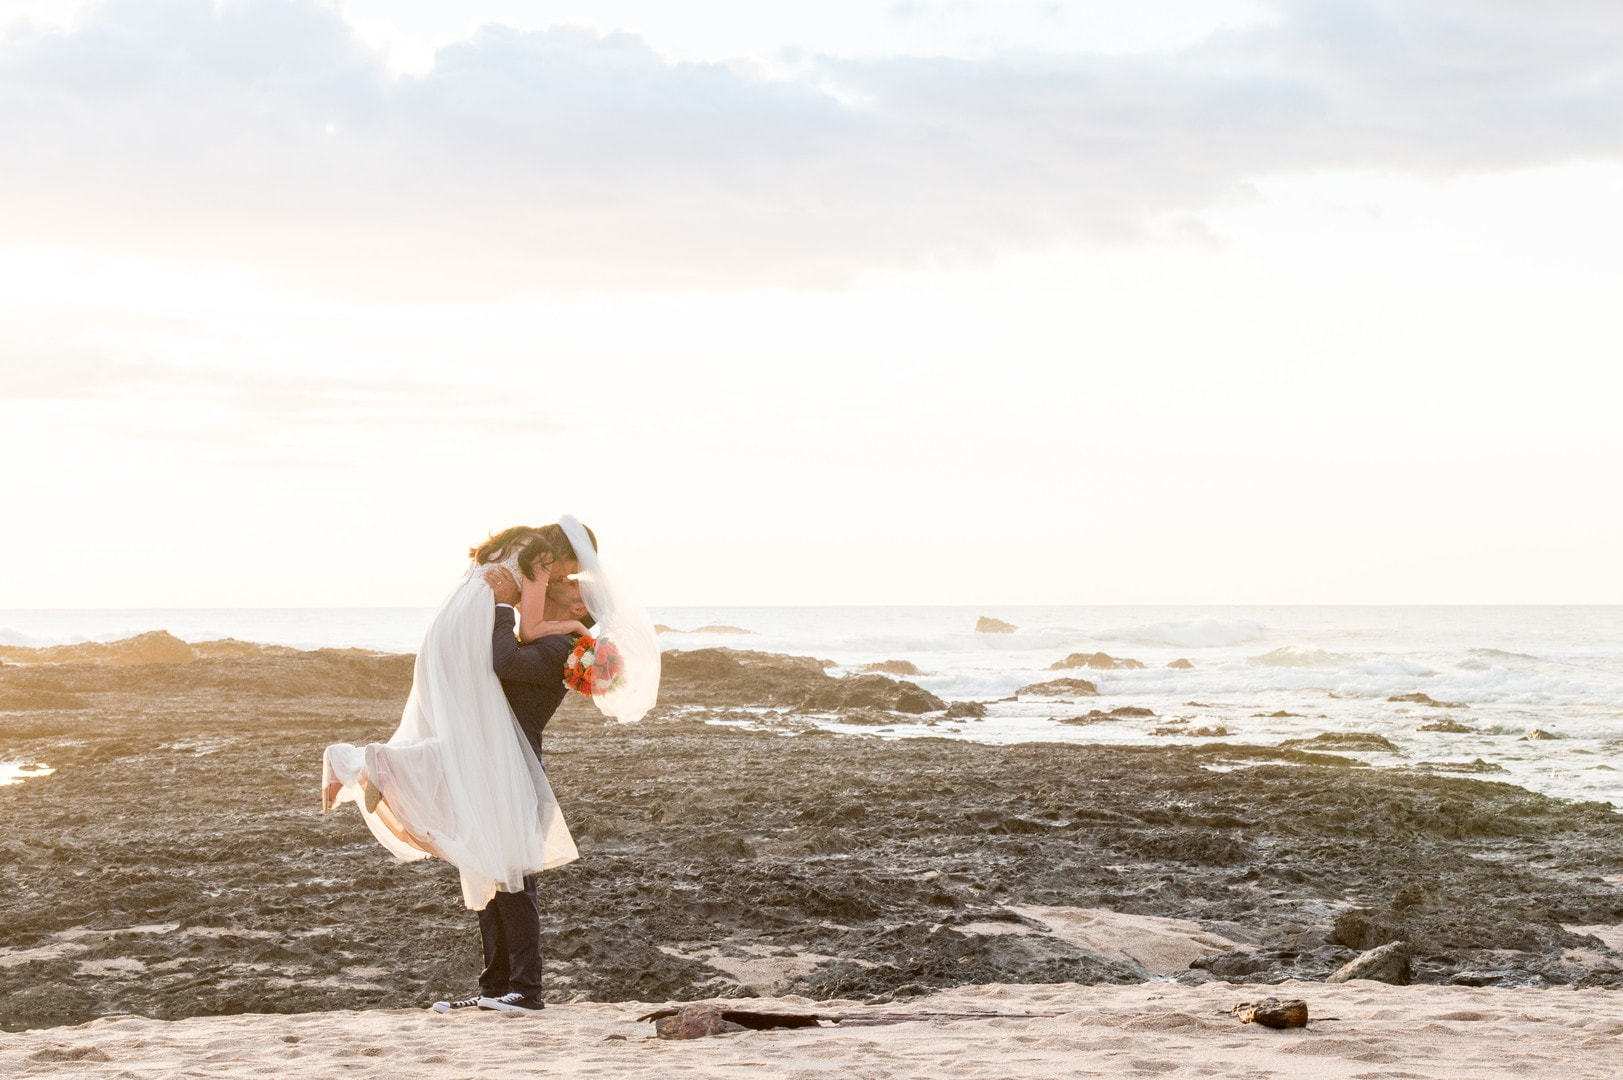 Carla & Armando's Intimate Pacific Coast Elopement, Photography by Two Adventurous Souls for Destination Wedding blog Adriana Weddings